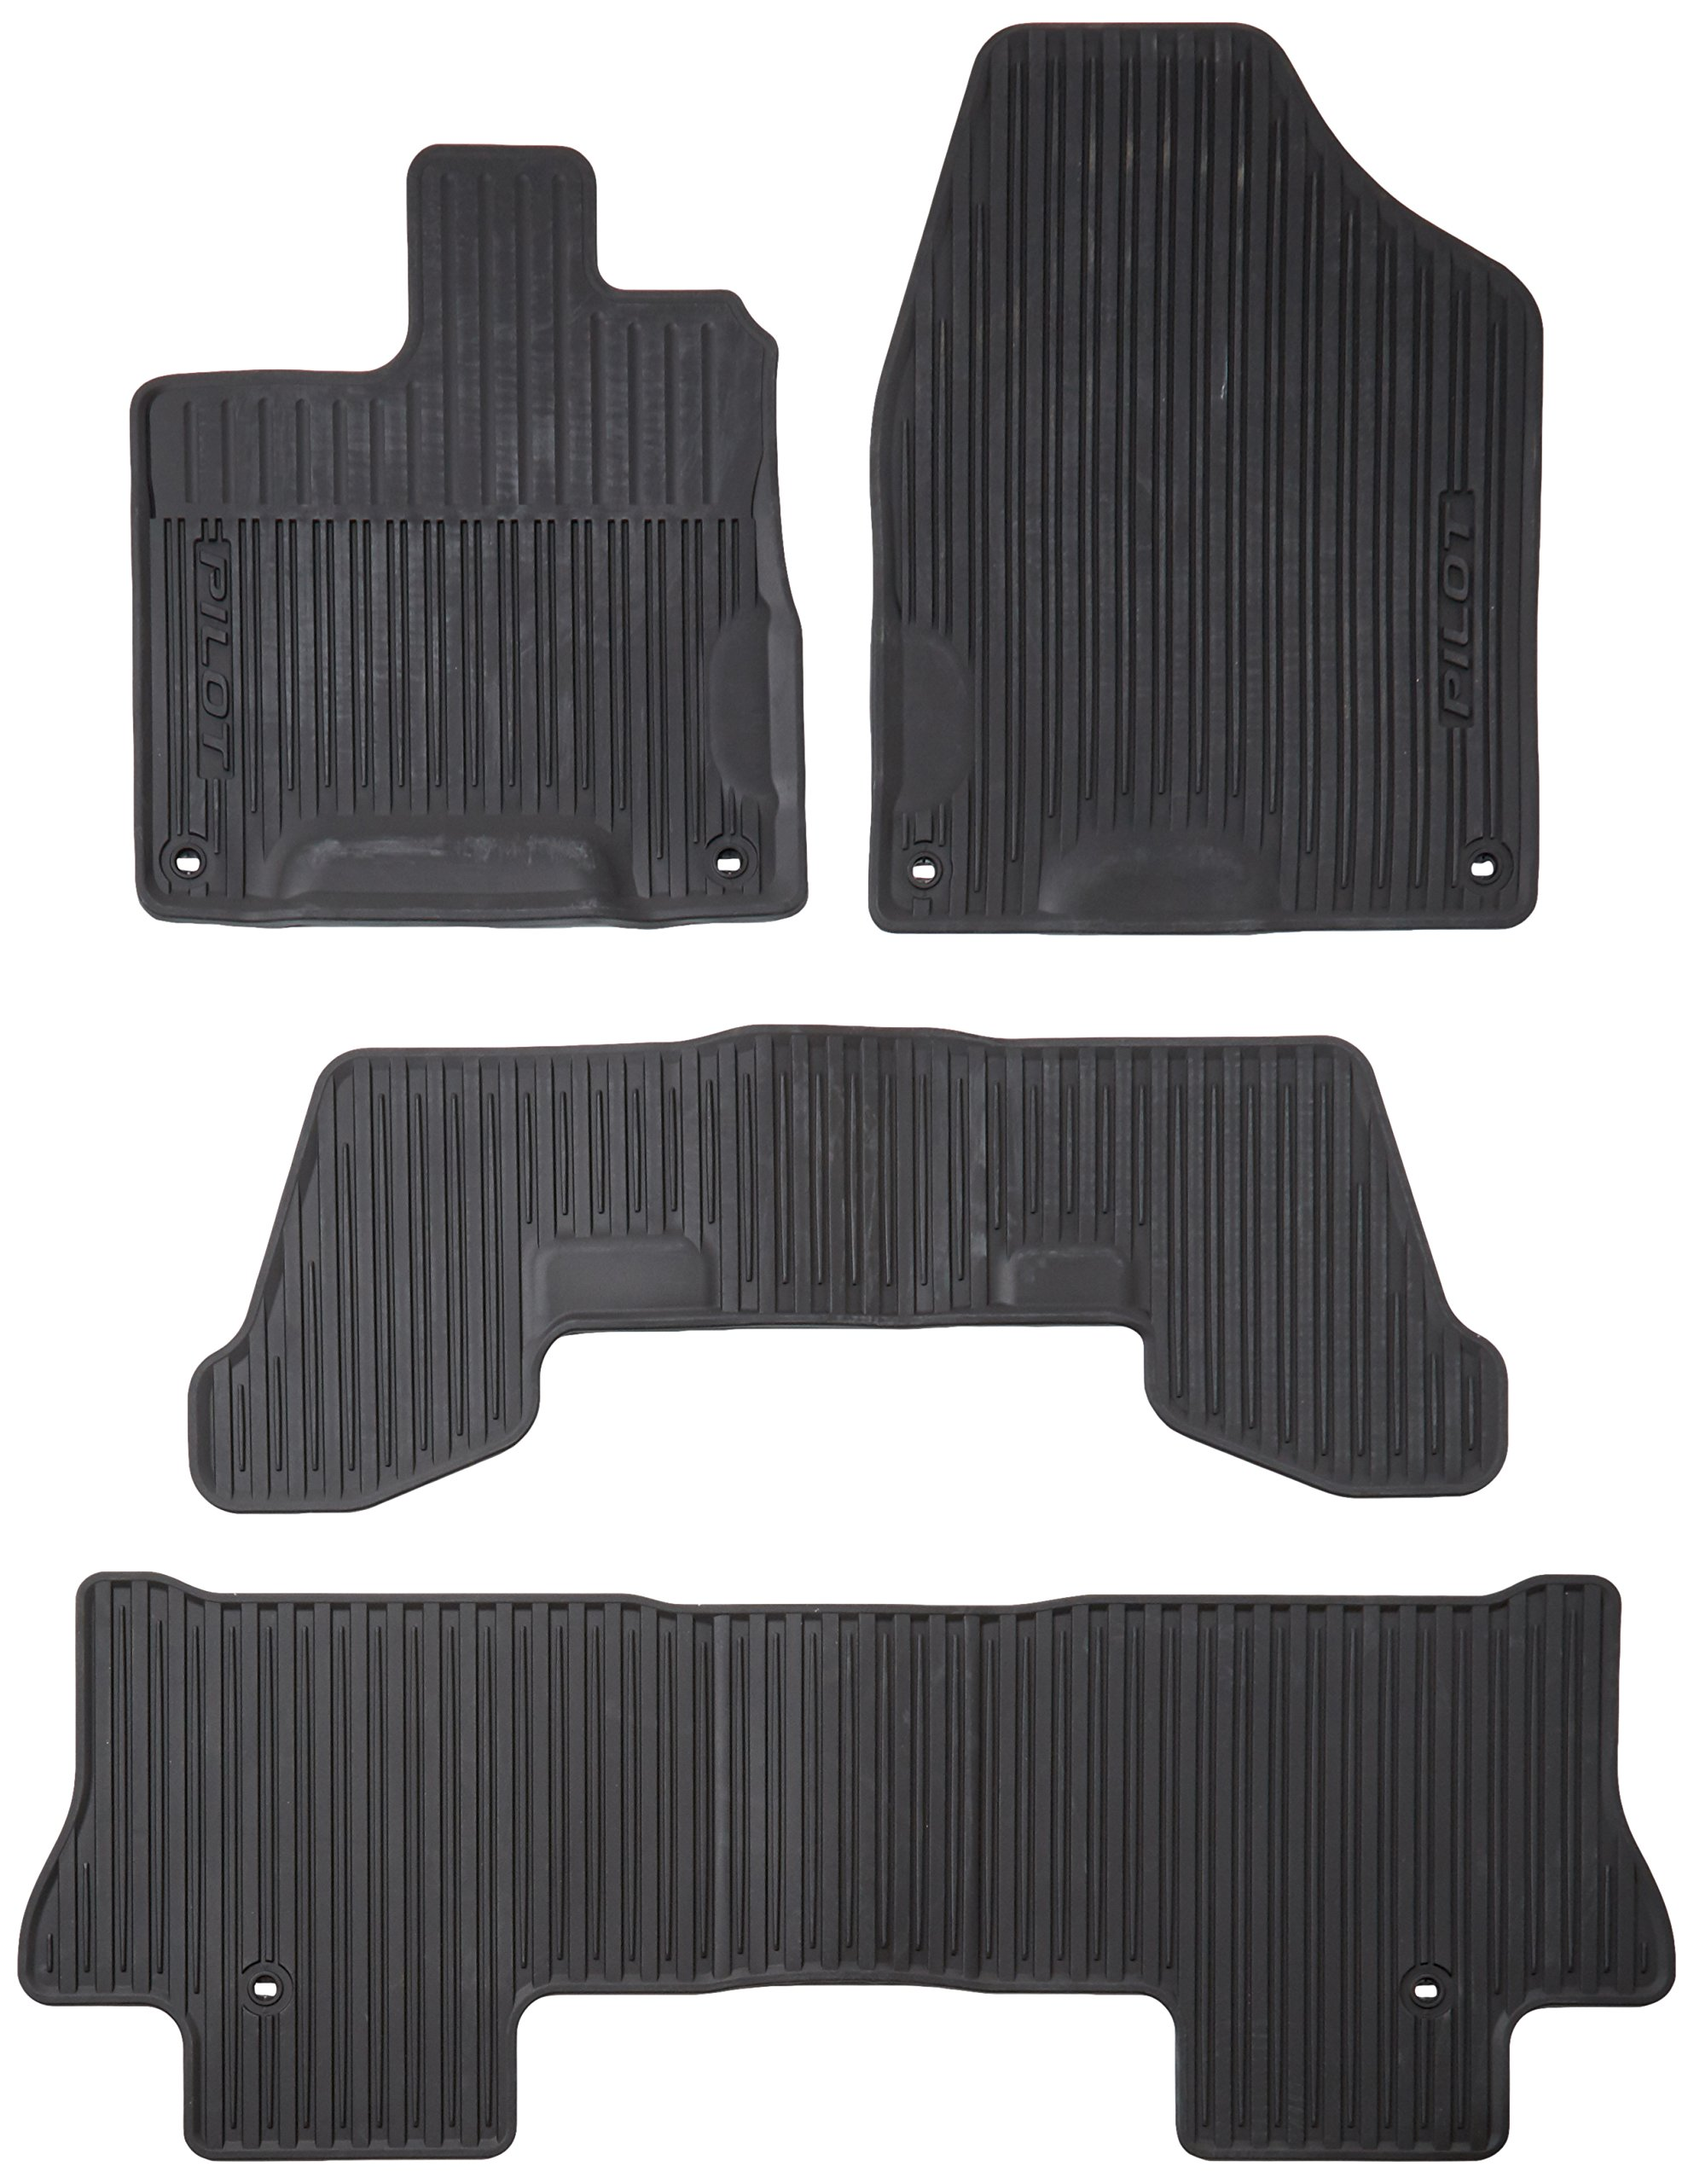 Honda Genuine 08P17-TG7-100 All-Weather Floor Mat for 2016 Pilot